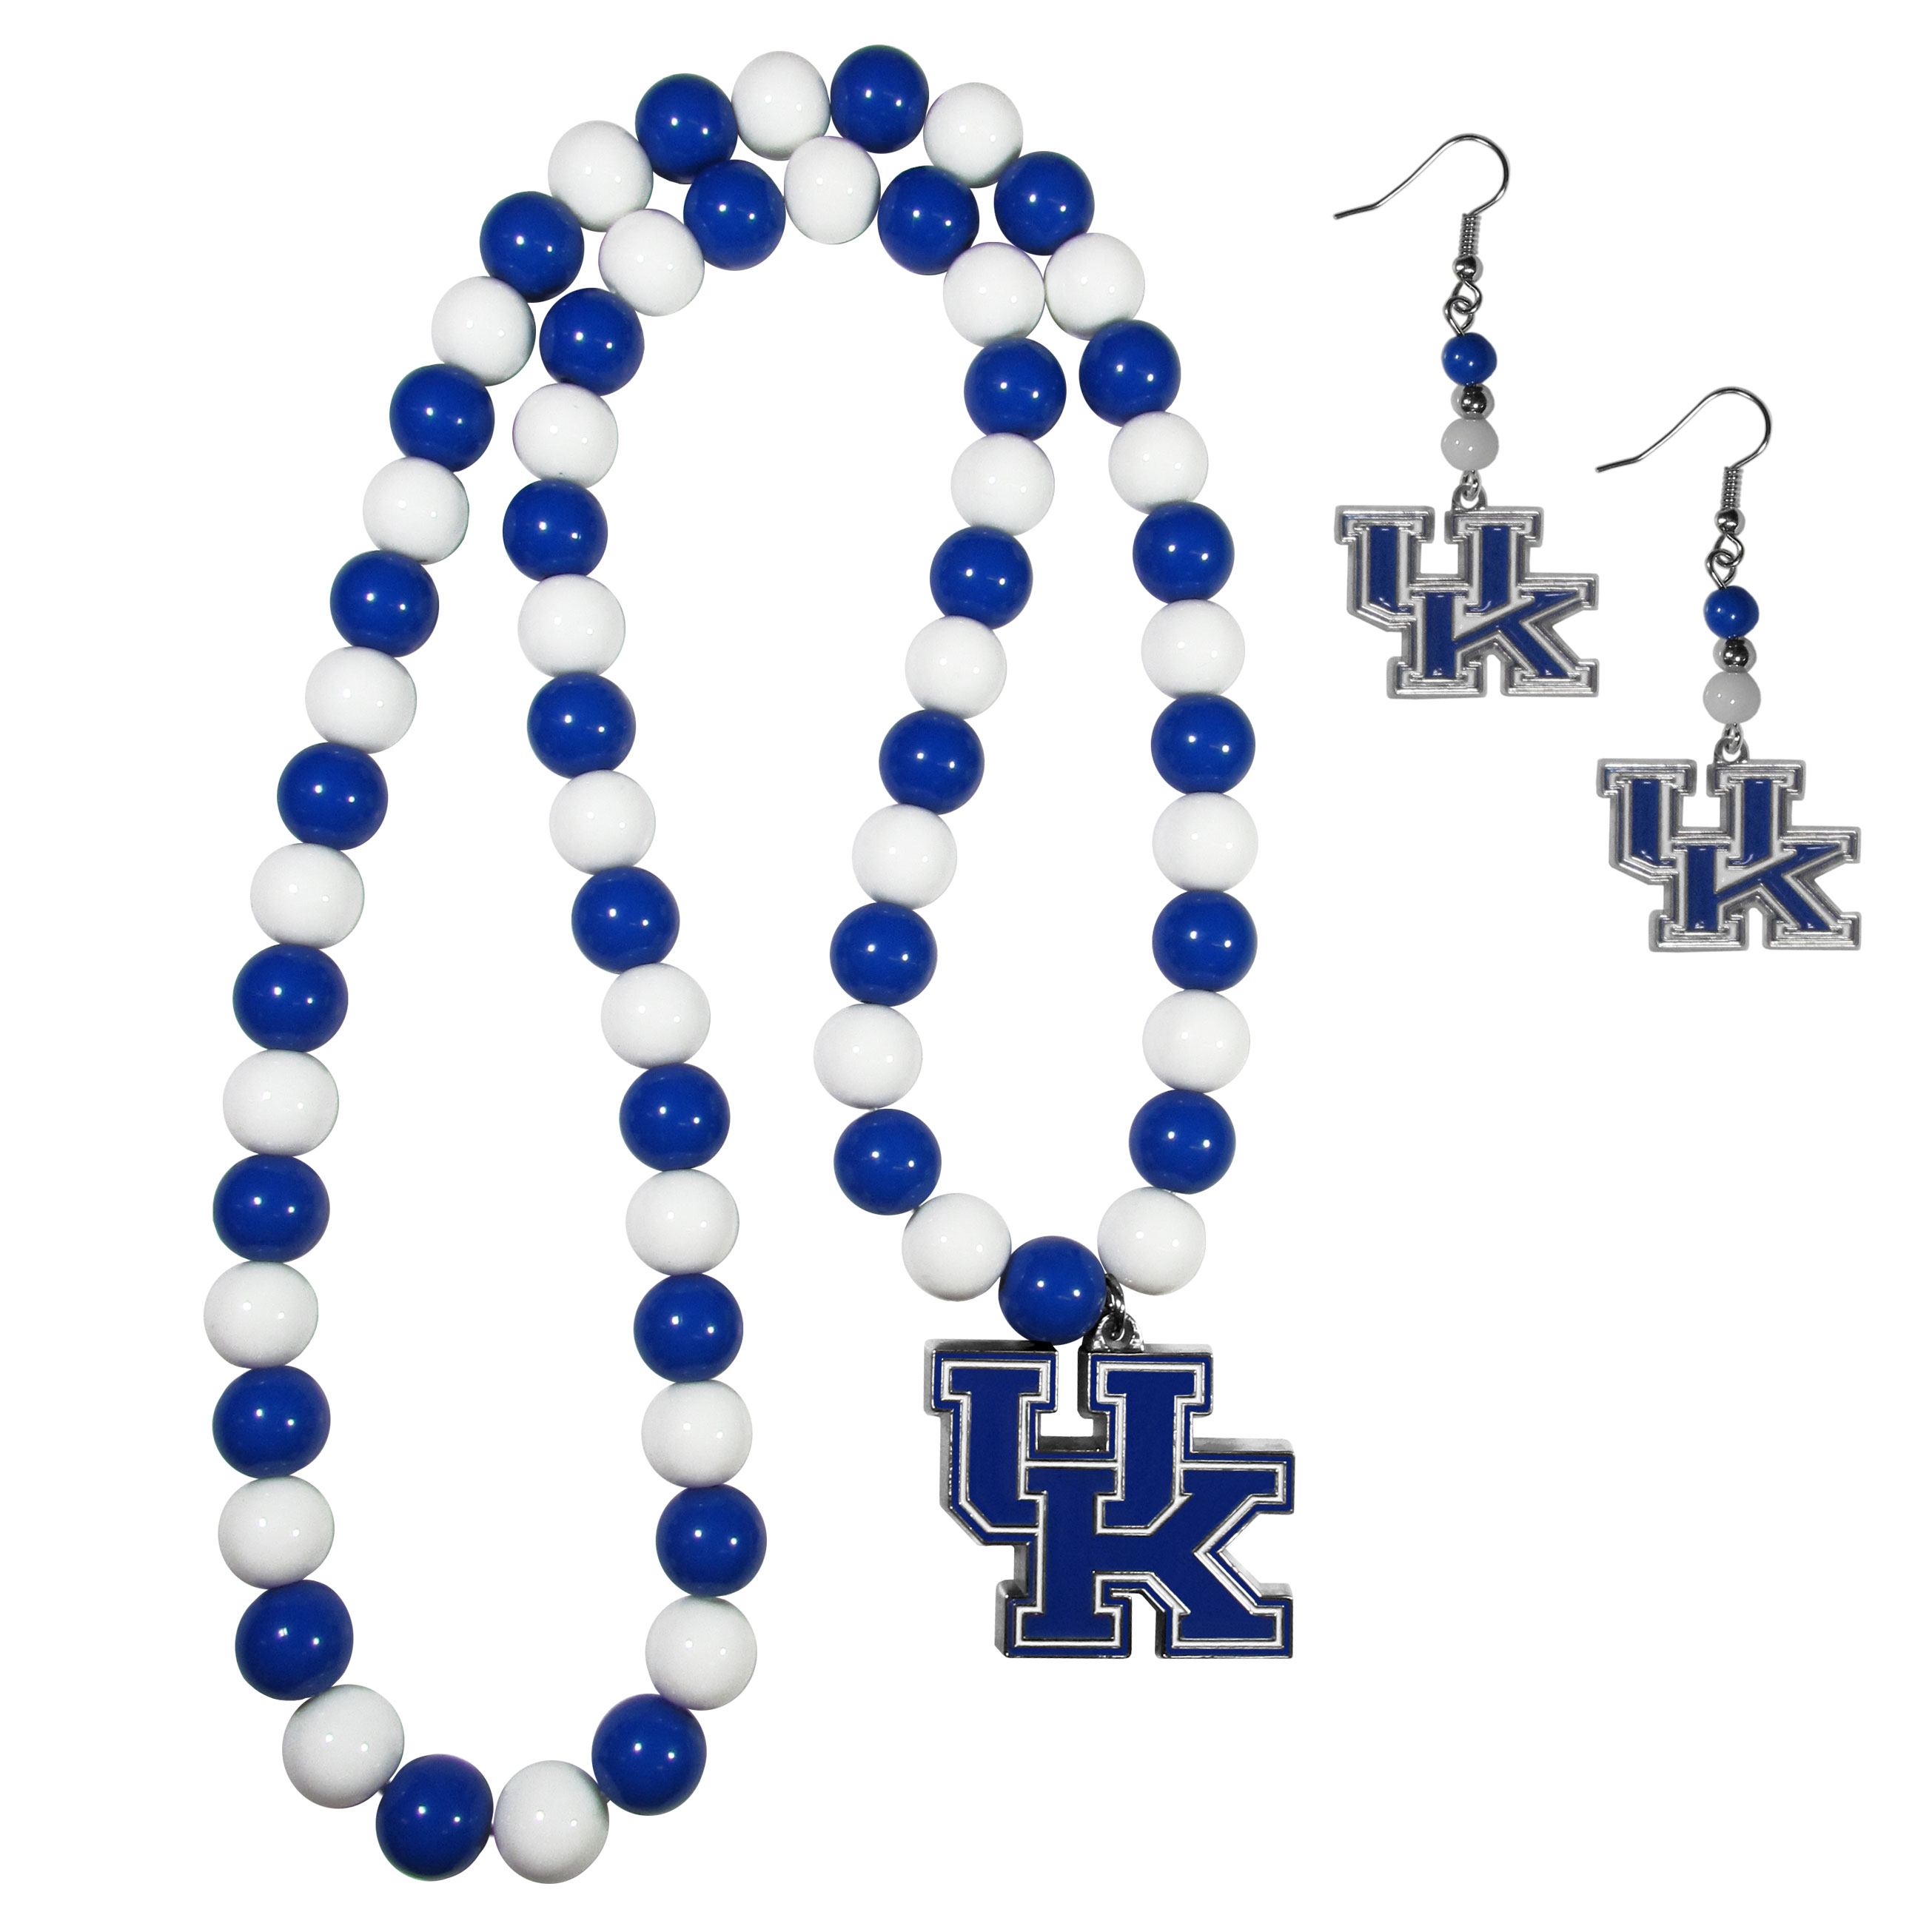 Kentucky Wildcats Fan Bead Earrings and Necklace Set - These fun and colorful Kentucky Wildcats fan bead jewelry pieces are an eyecatching way to show off your team spirit. The earrings feature hypoallergenic, nickel free fishhook post and 2 team colored beads with a beautifully carved team charm to finish this attractive dangle look. The mathcing bracelet has alternating team colored beads on a stretch cord and features a matching team charm.